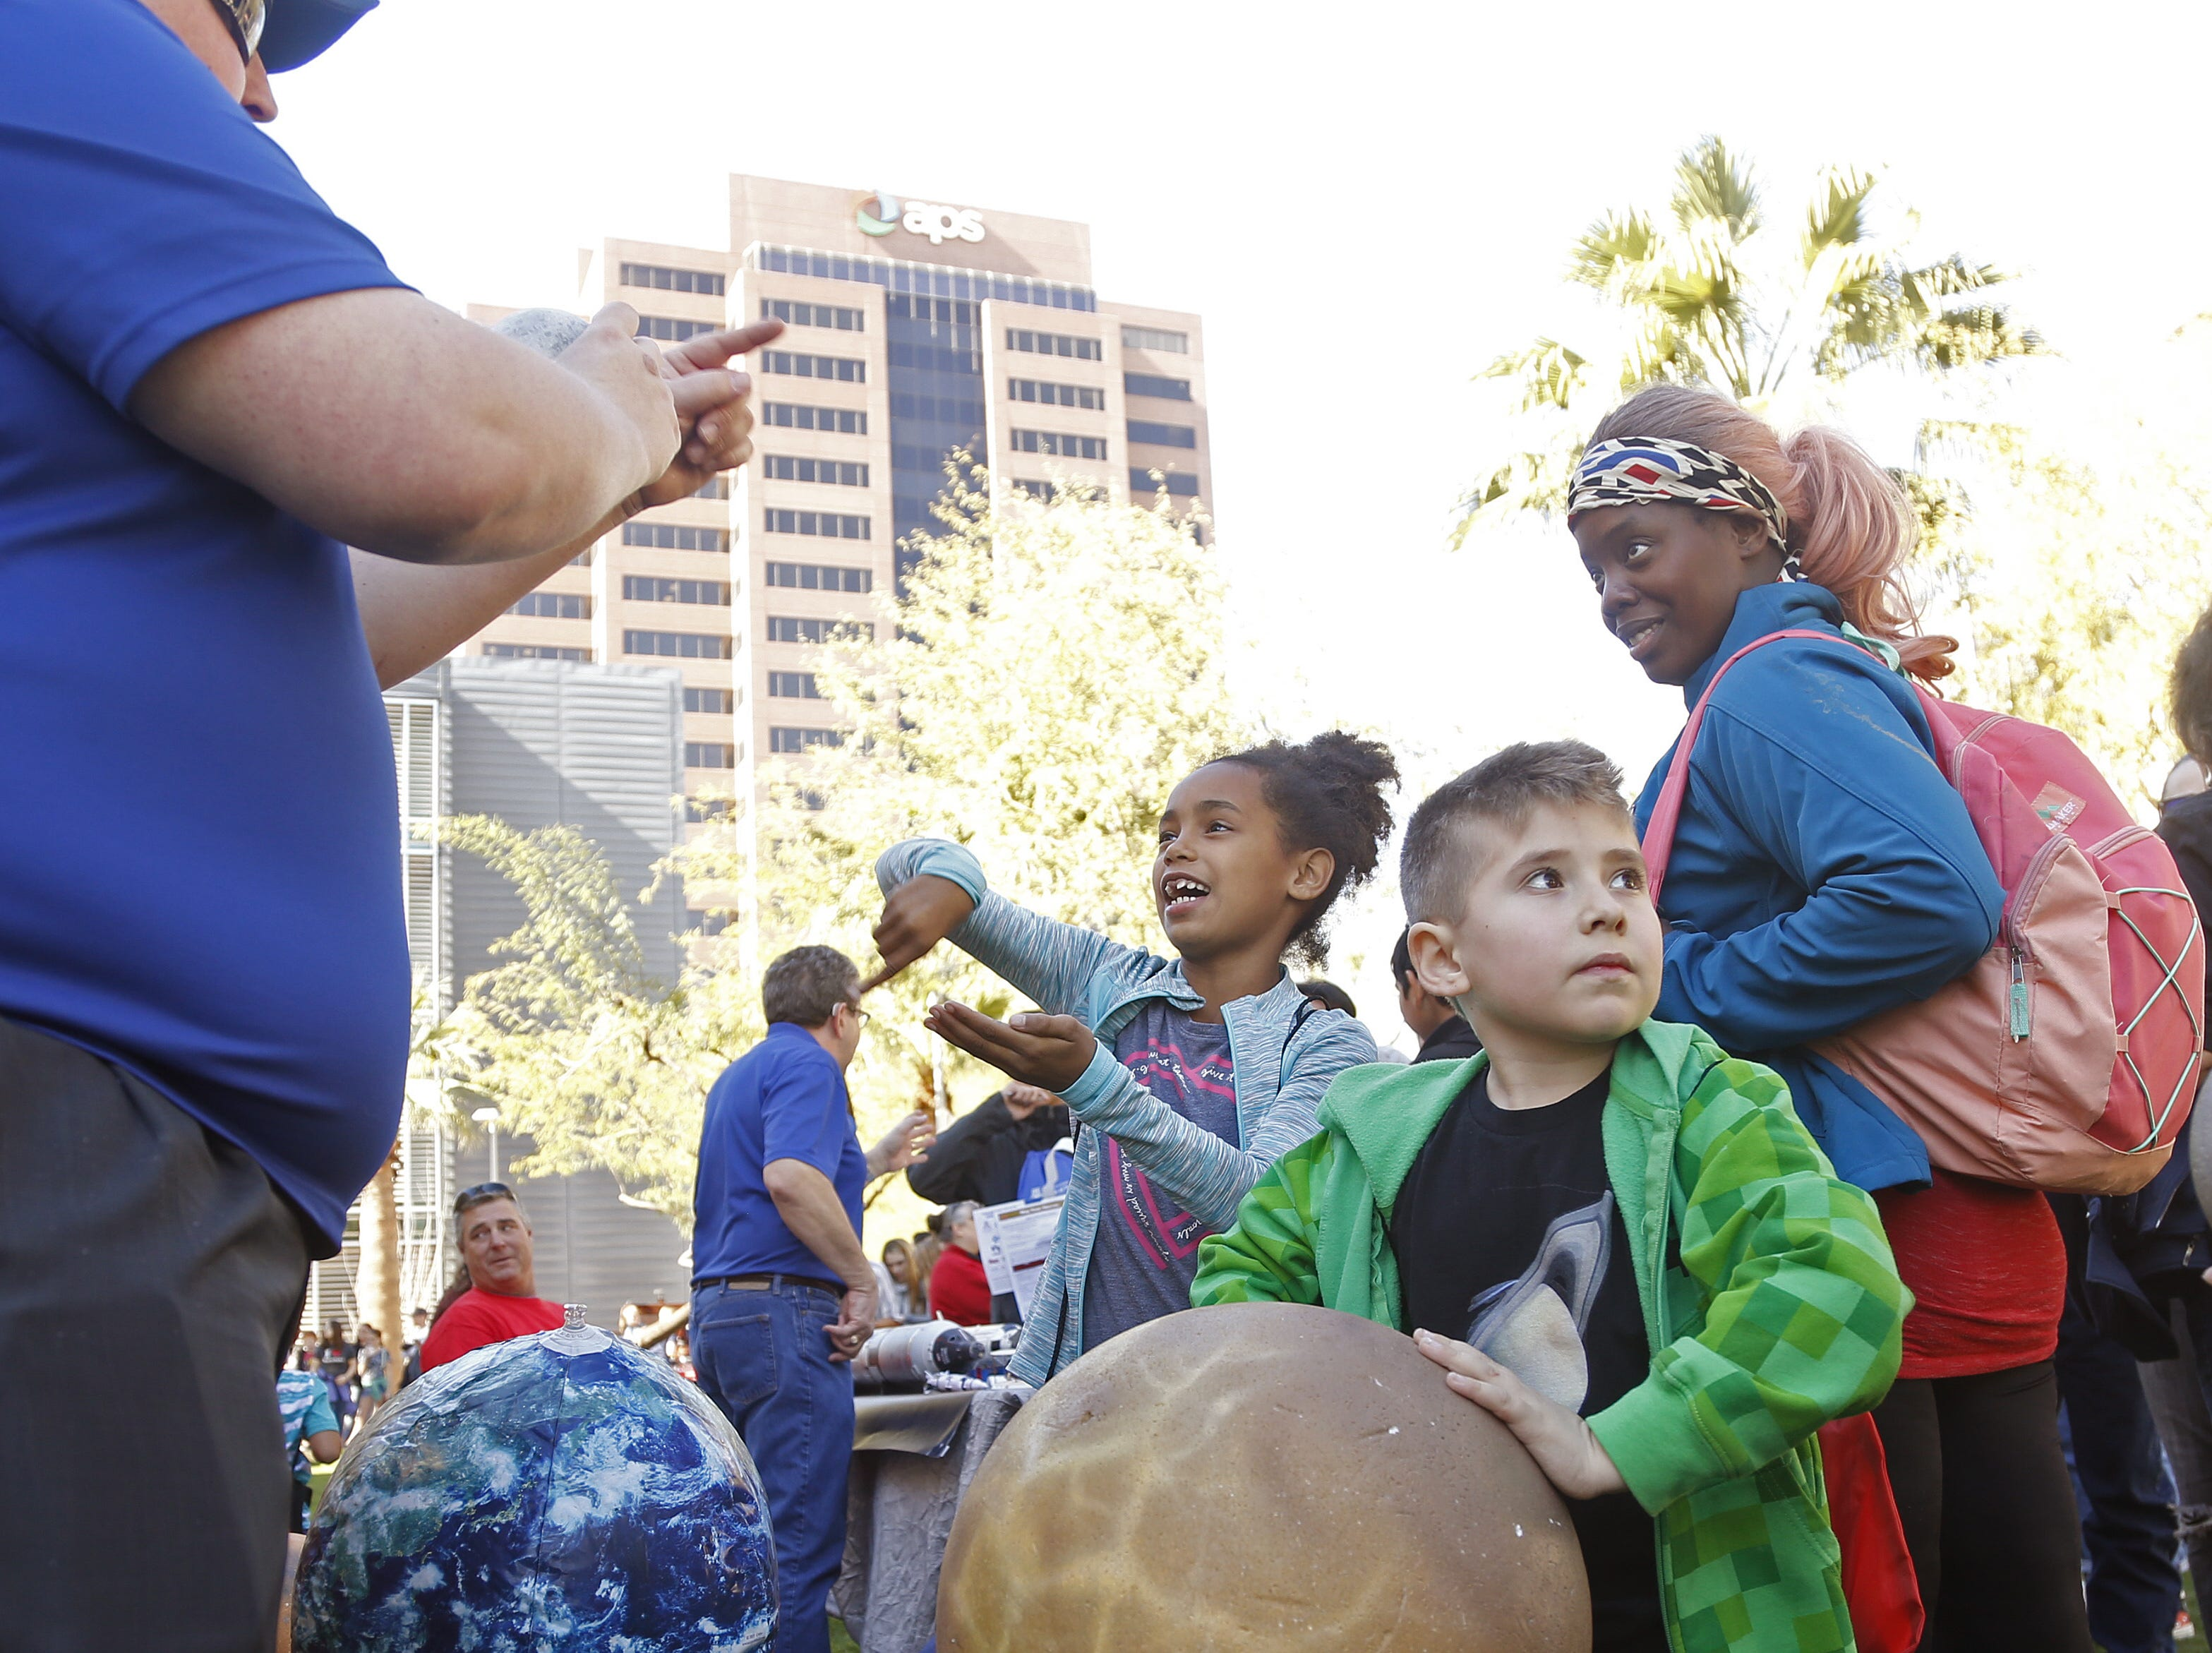 Alexandra Swift talks with volunteer Taylor Shackelford (left) about the orbiting of the planets during a STEM outreach event in downtown Phoenix, Ariz. on January 26, 2019.